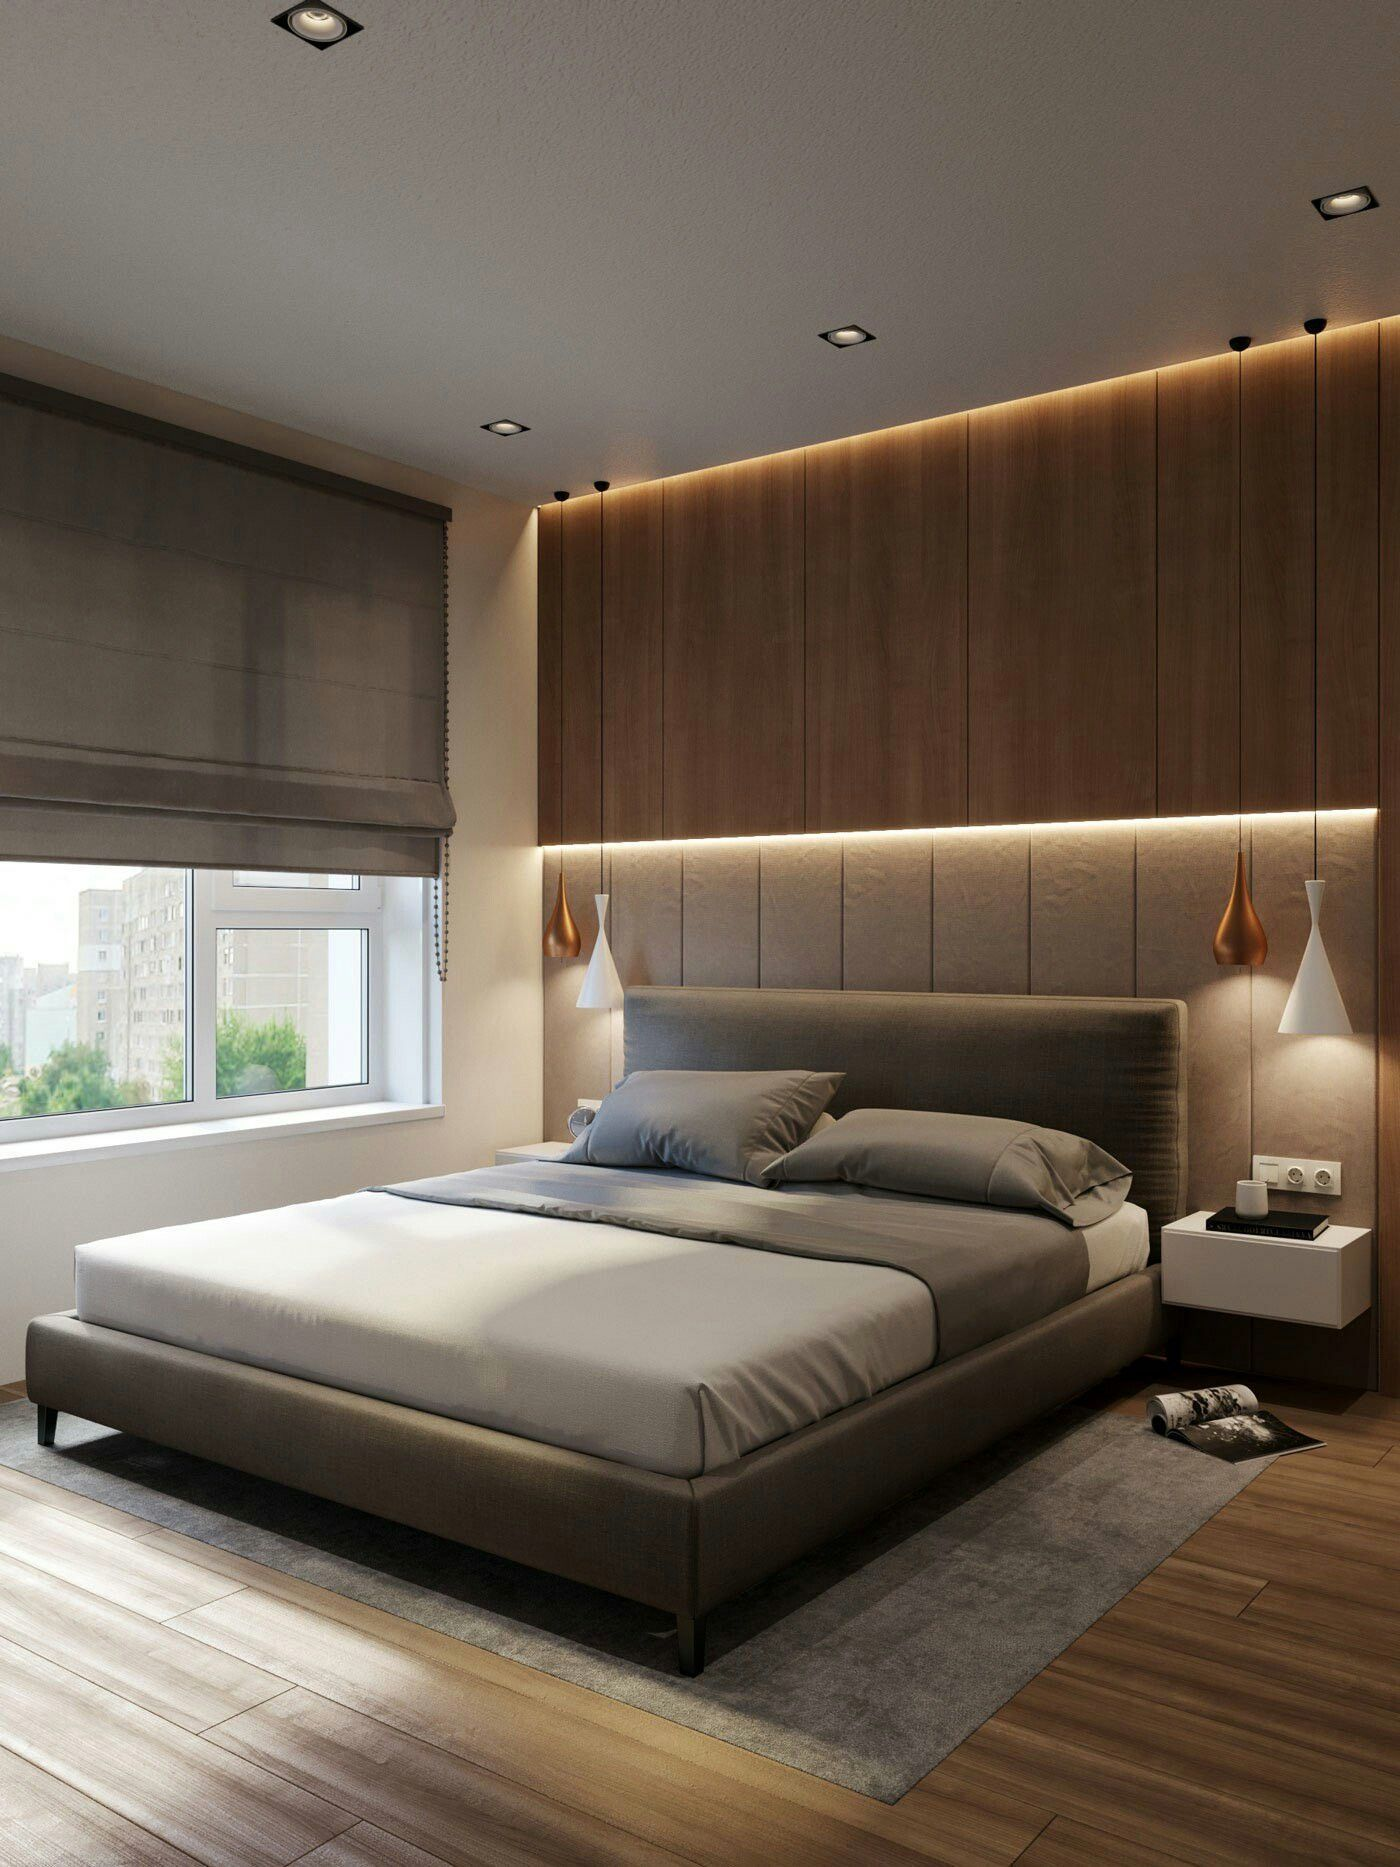 21 Modern Bedroom Ideas For A Perfect Bedroom Modern Bedroom Ideas Bed Design Modern Bedroom Furniture Design Bedroom Bed Design